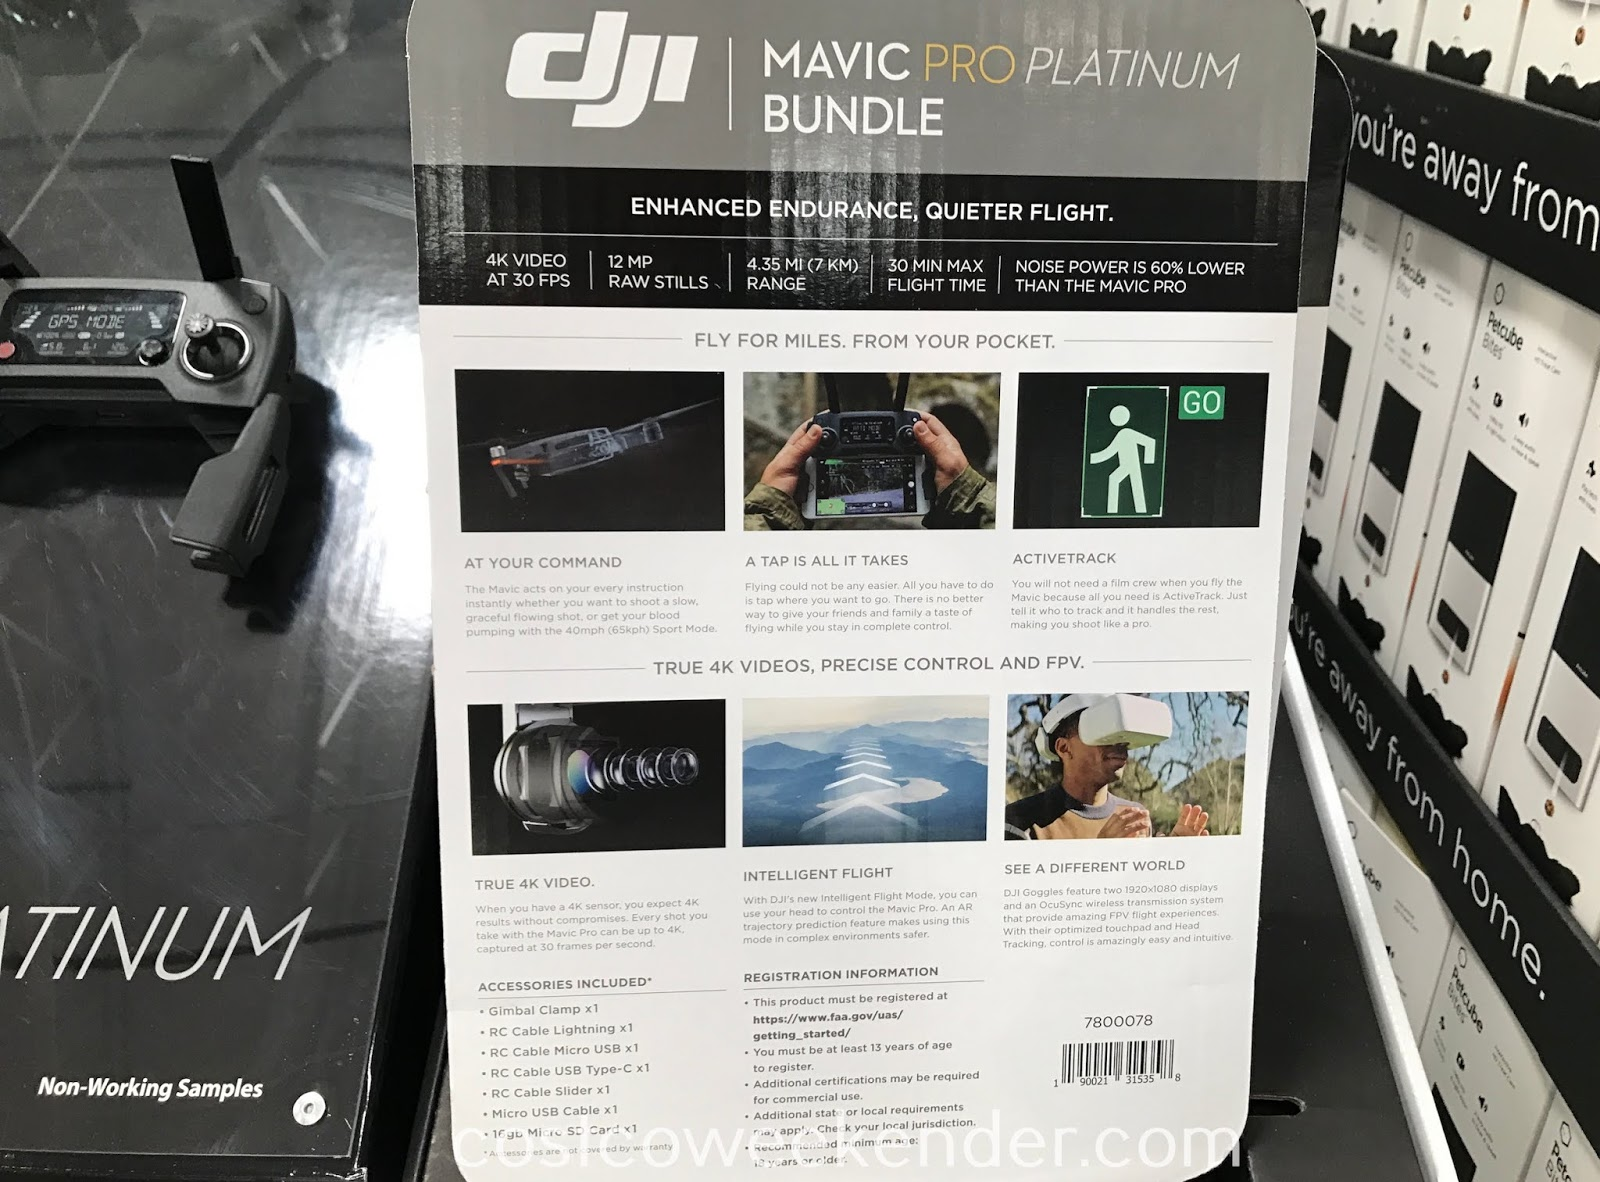 The goggles that come with the DJI Mavic Pro Platinum Bundle make you feel as if you're in the cockpit